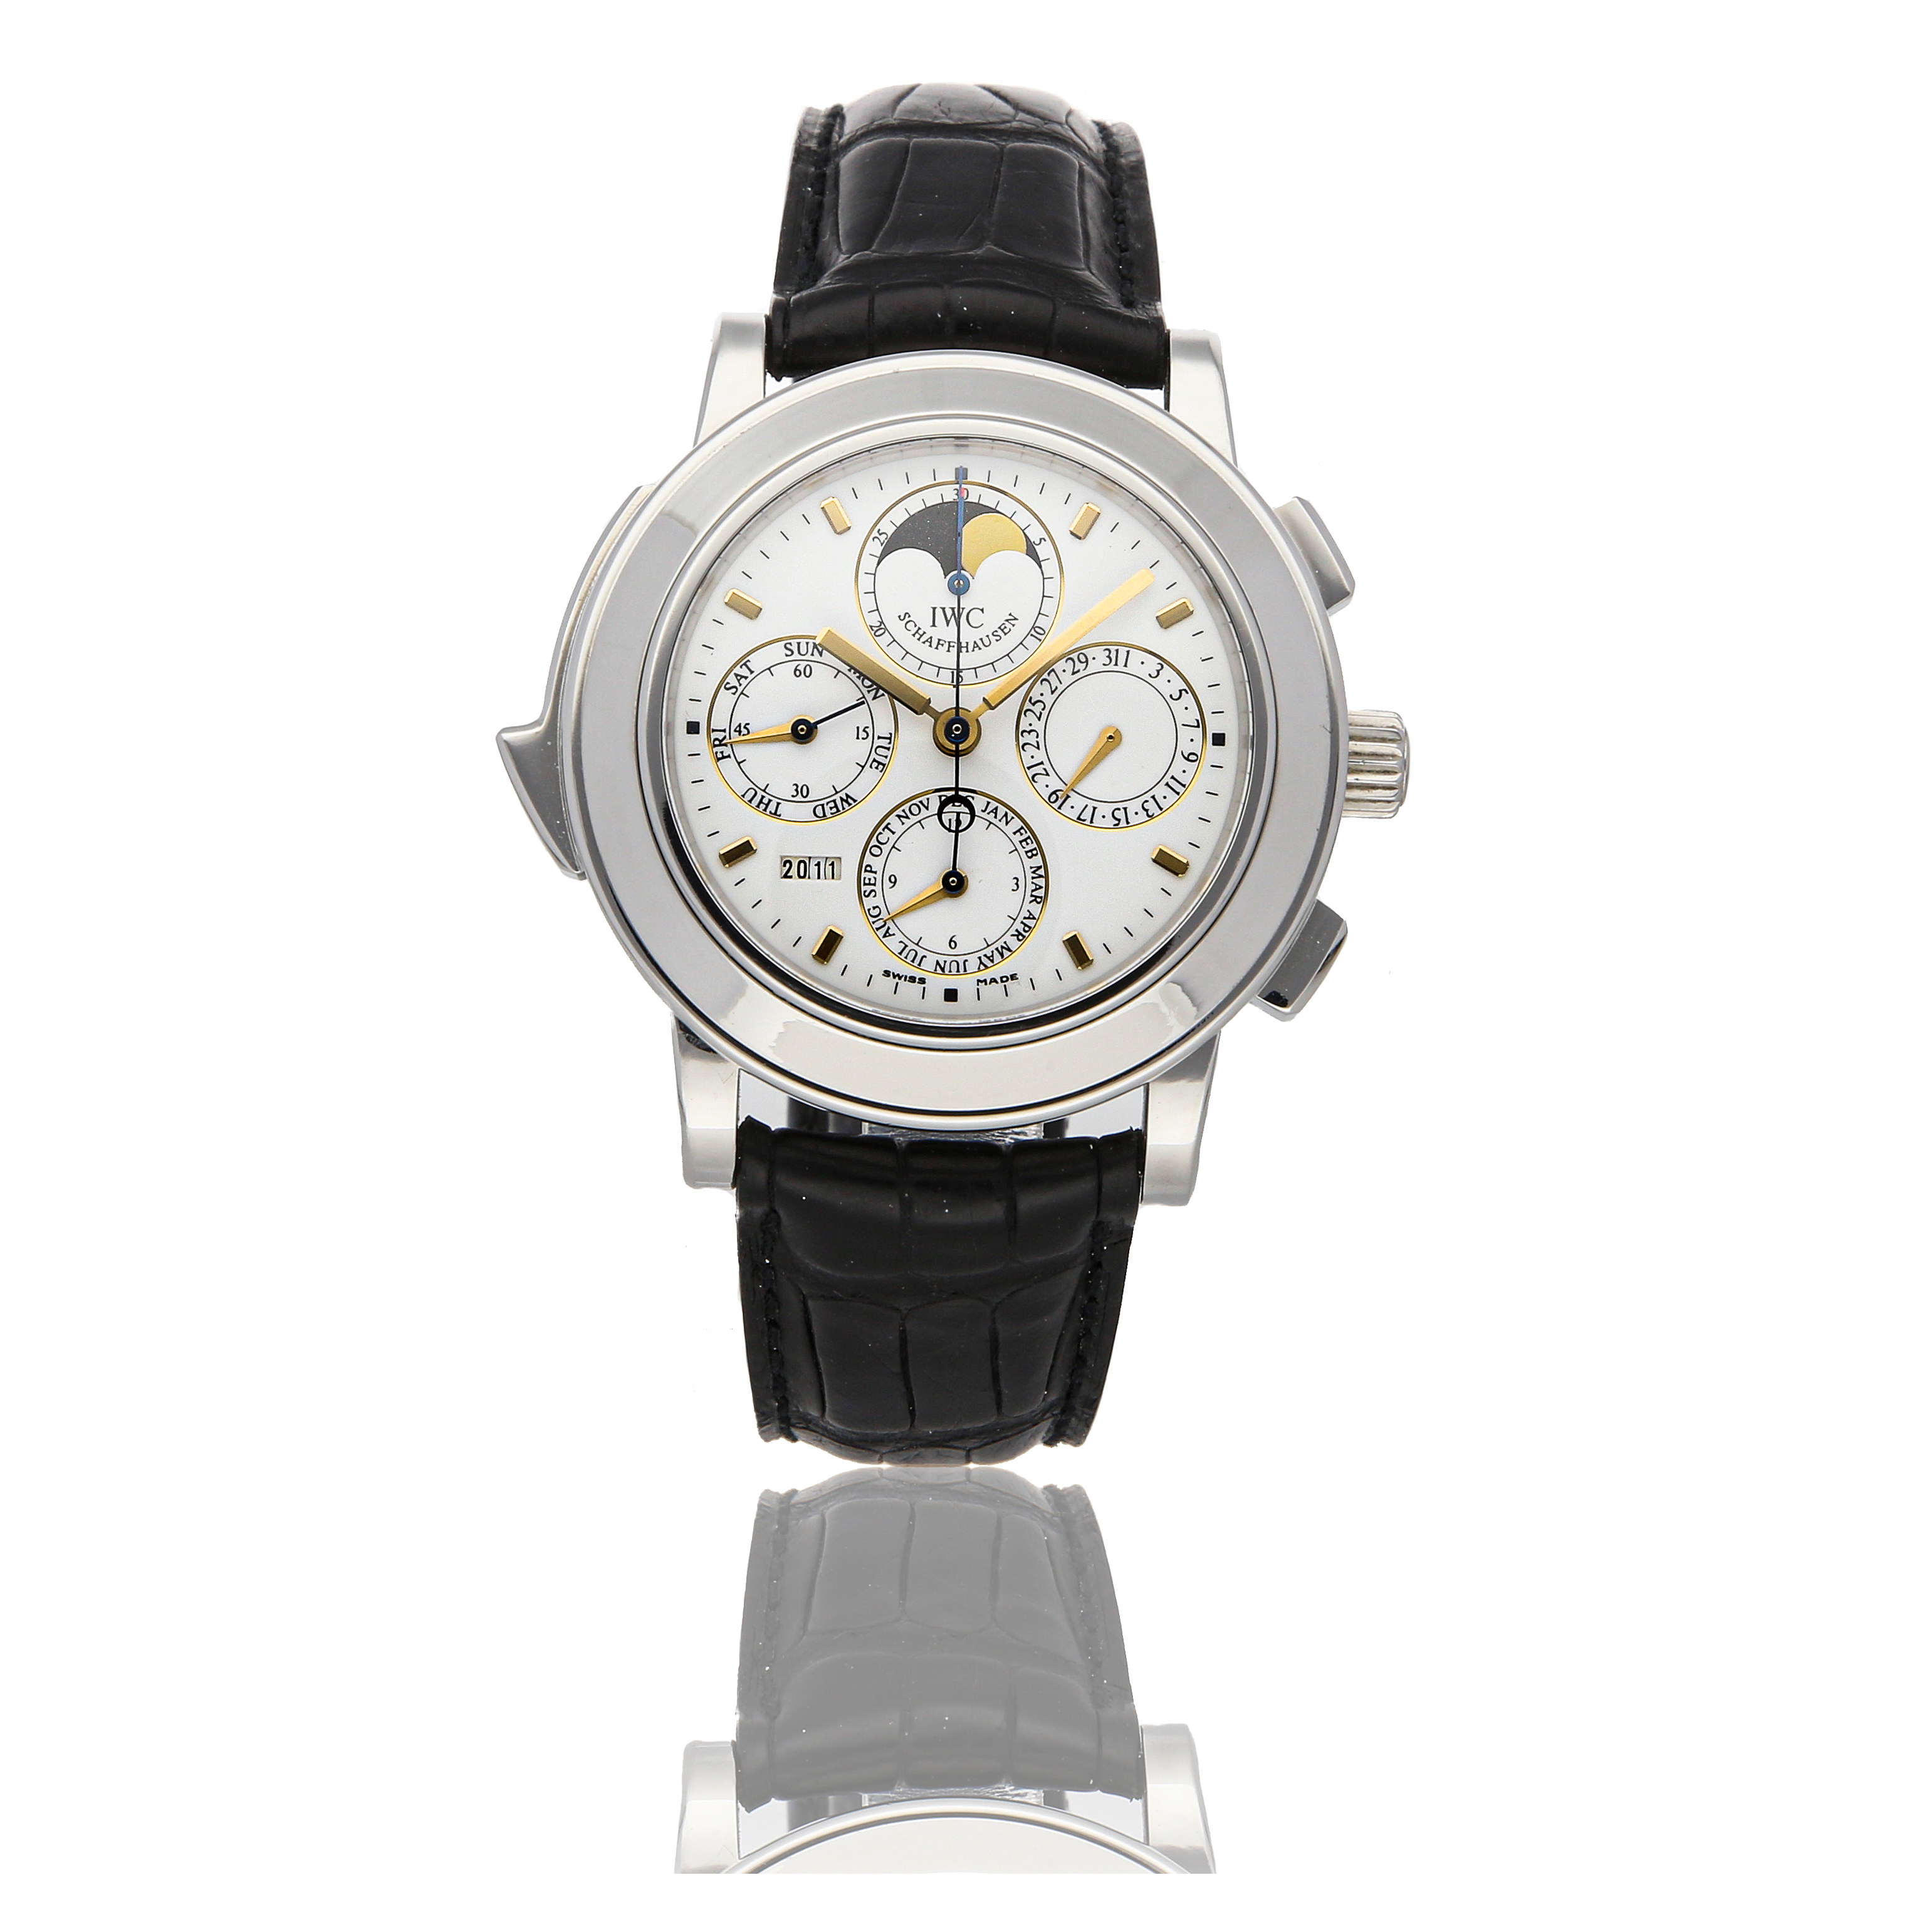 View full screen - View 1 of Lot 307. IWC   GRANDE COMPLICATION REF 3770-03, LIMITED EDITION PLATINUM AUTOMATIC MINUTE-REPEATING PERPETUAL CALENDAR CHRONOGRAPH WRISTWATCH WITH MOON PHASES CIRCA 2003.